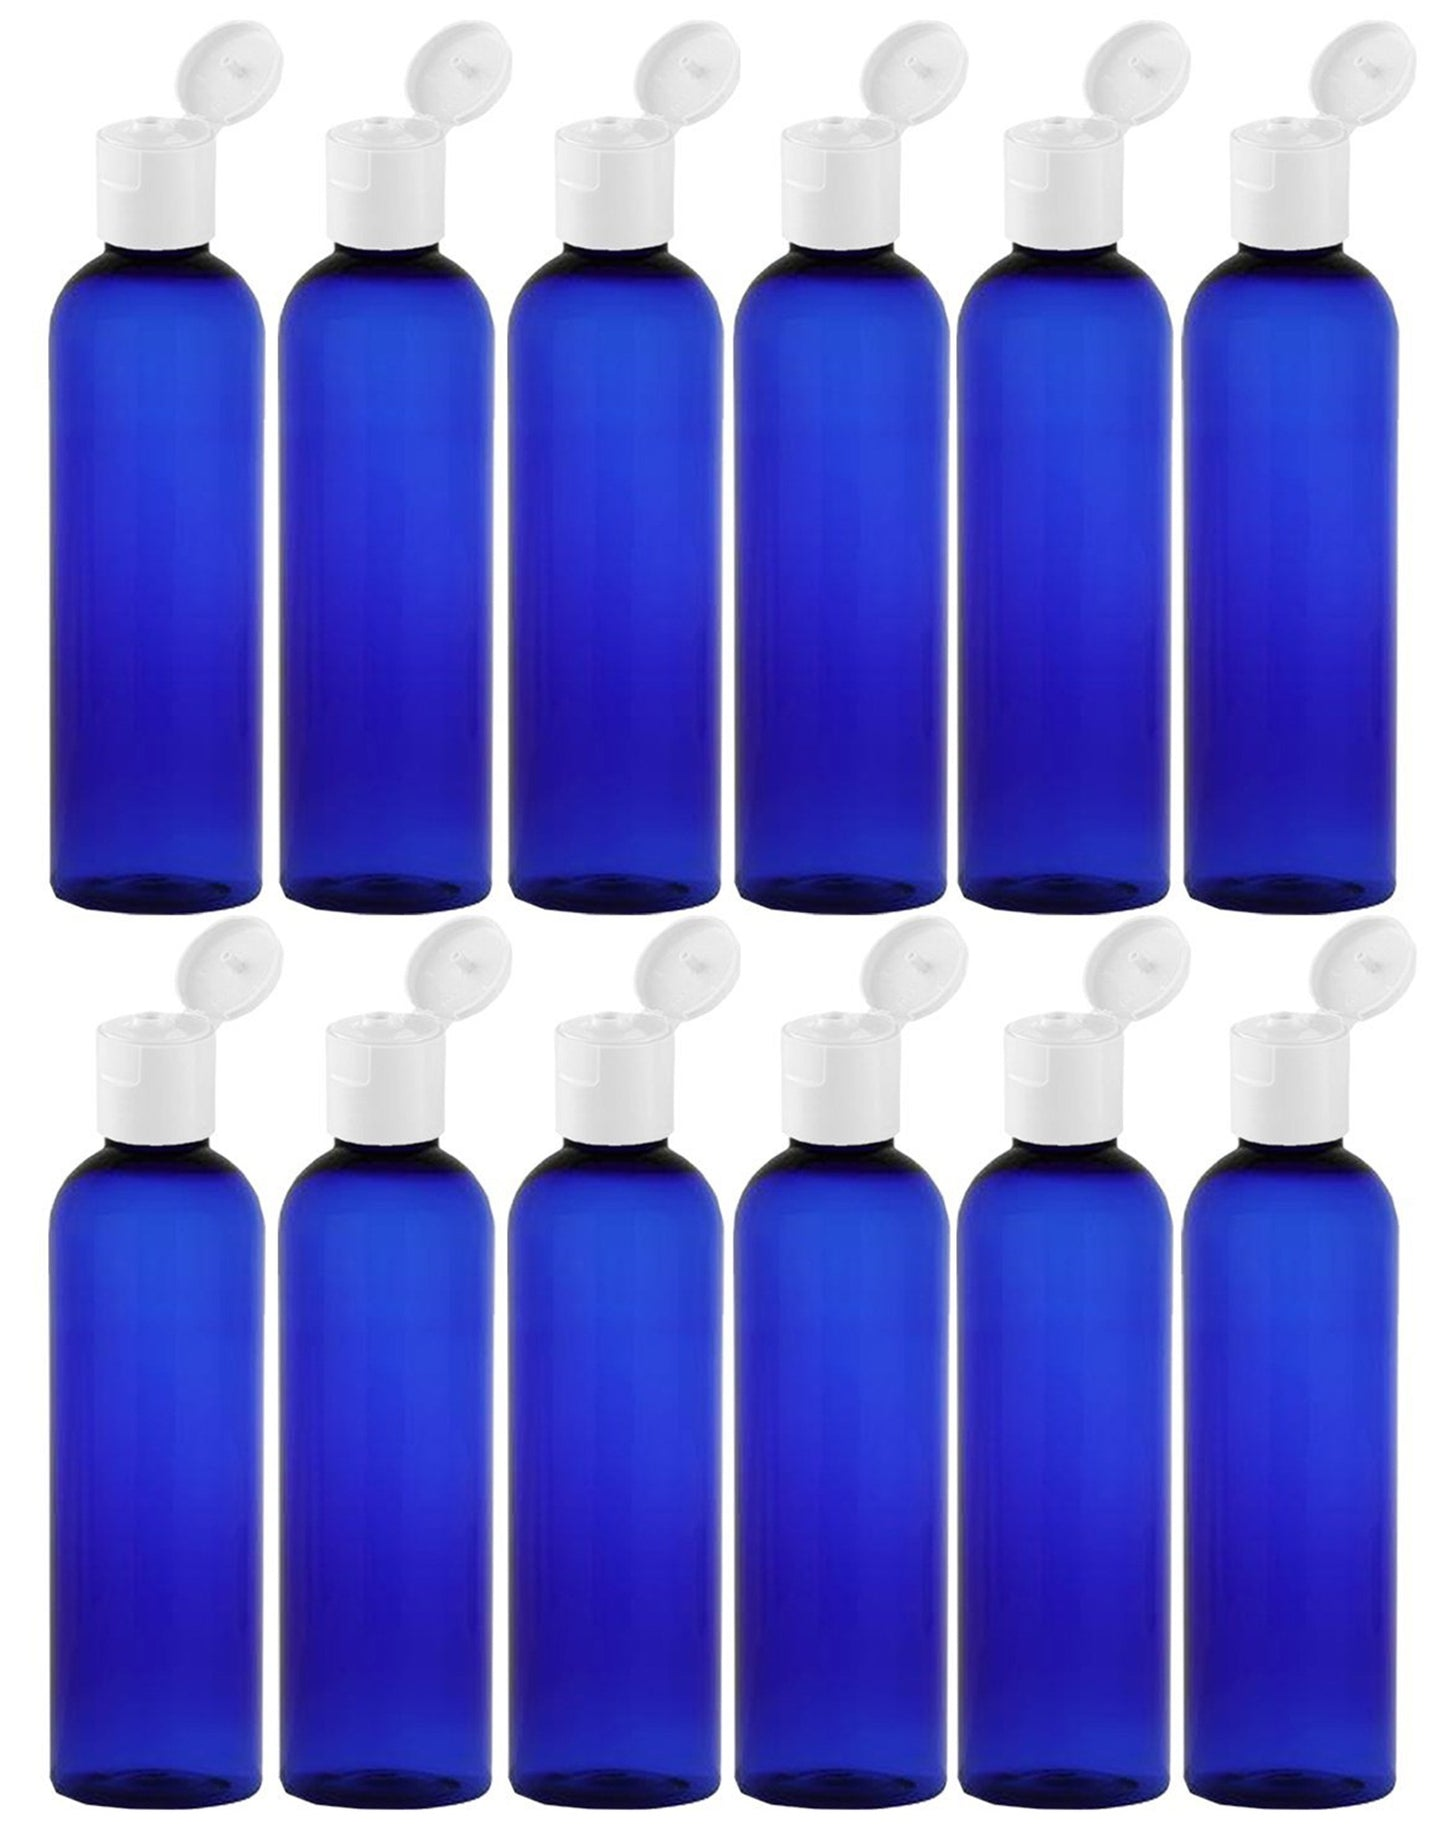 MoYo Natural Labs 4 oz Travel Bottles, Empty Travel Containers with Flip Caps, BPA Free PET Plastic Squeezable Toiletry/Cosmetic Bottles (Neck 20-410) (Pack of 12, Blue)